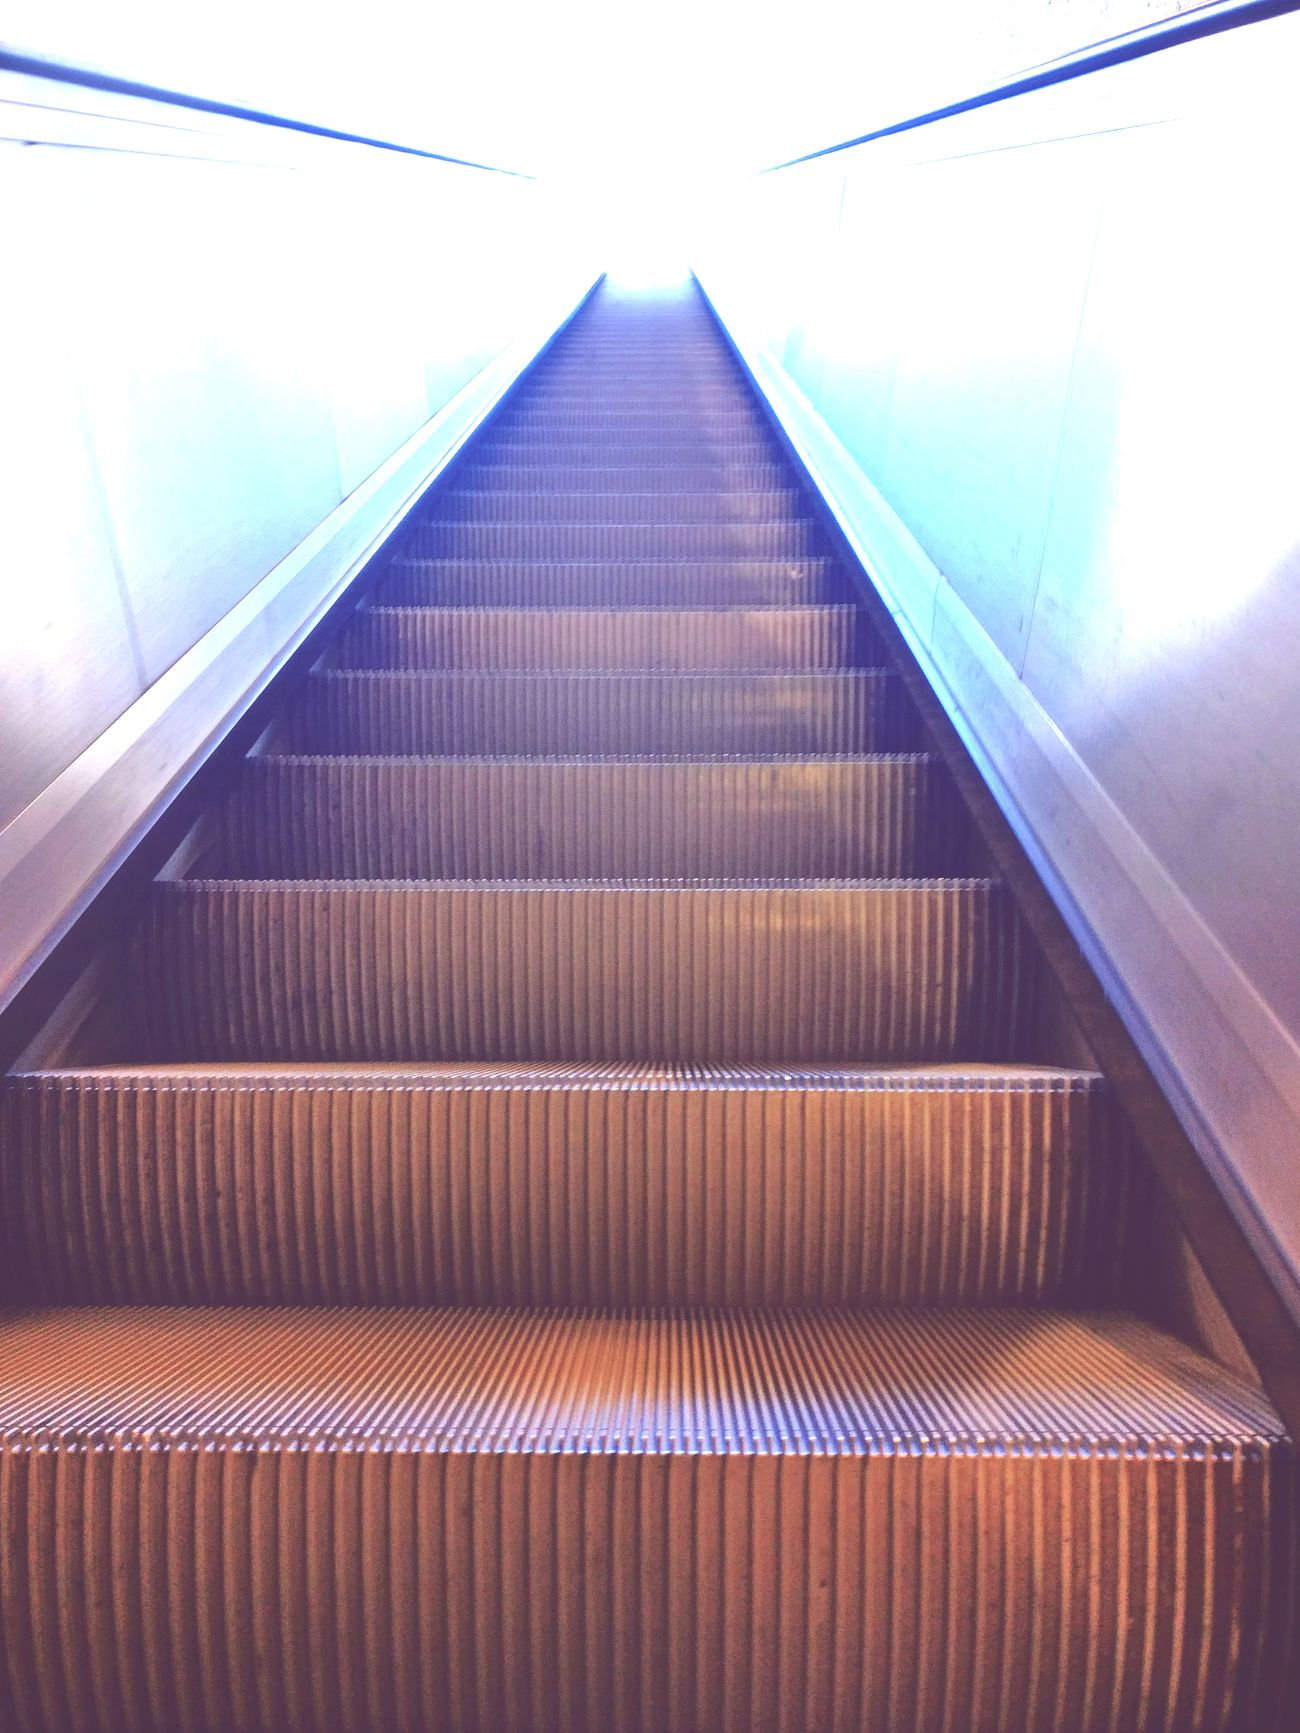 Stairway to heaven The Way Forward No People Steps Outdoors Close-up Sky Day Stairs Stair Stairways Stairs To Nowhere Stairway To Light Stairs_steps Stairs Geometry Escalators Escalators And Staircases